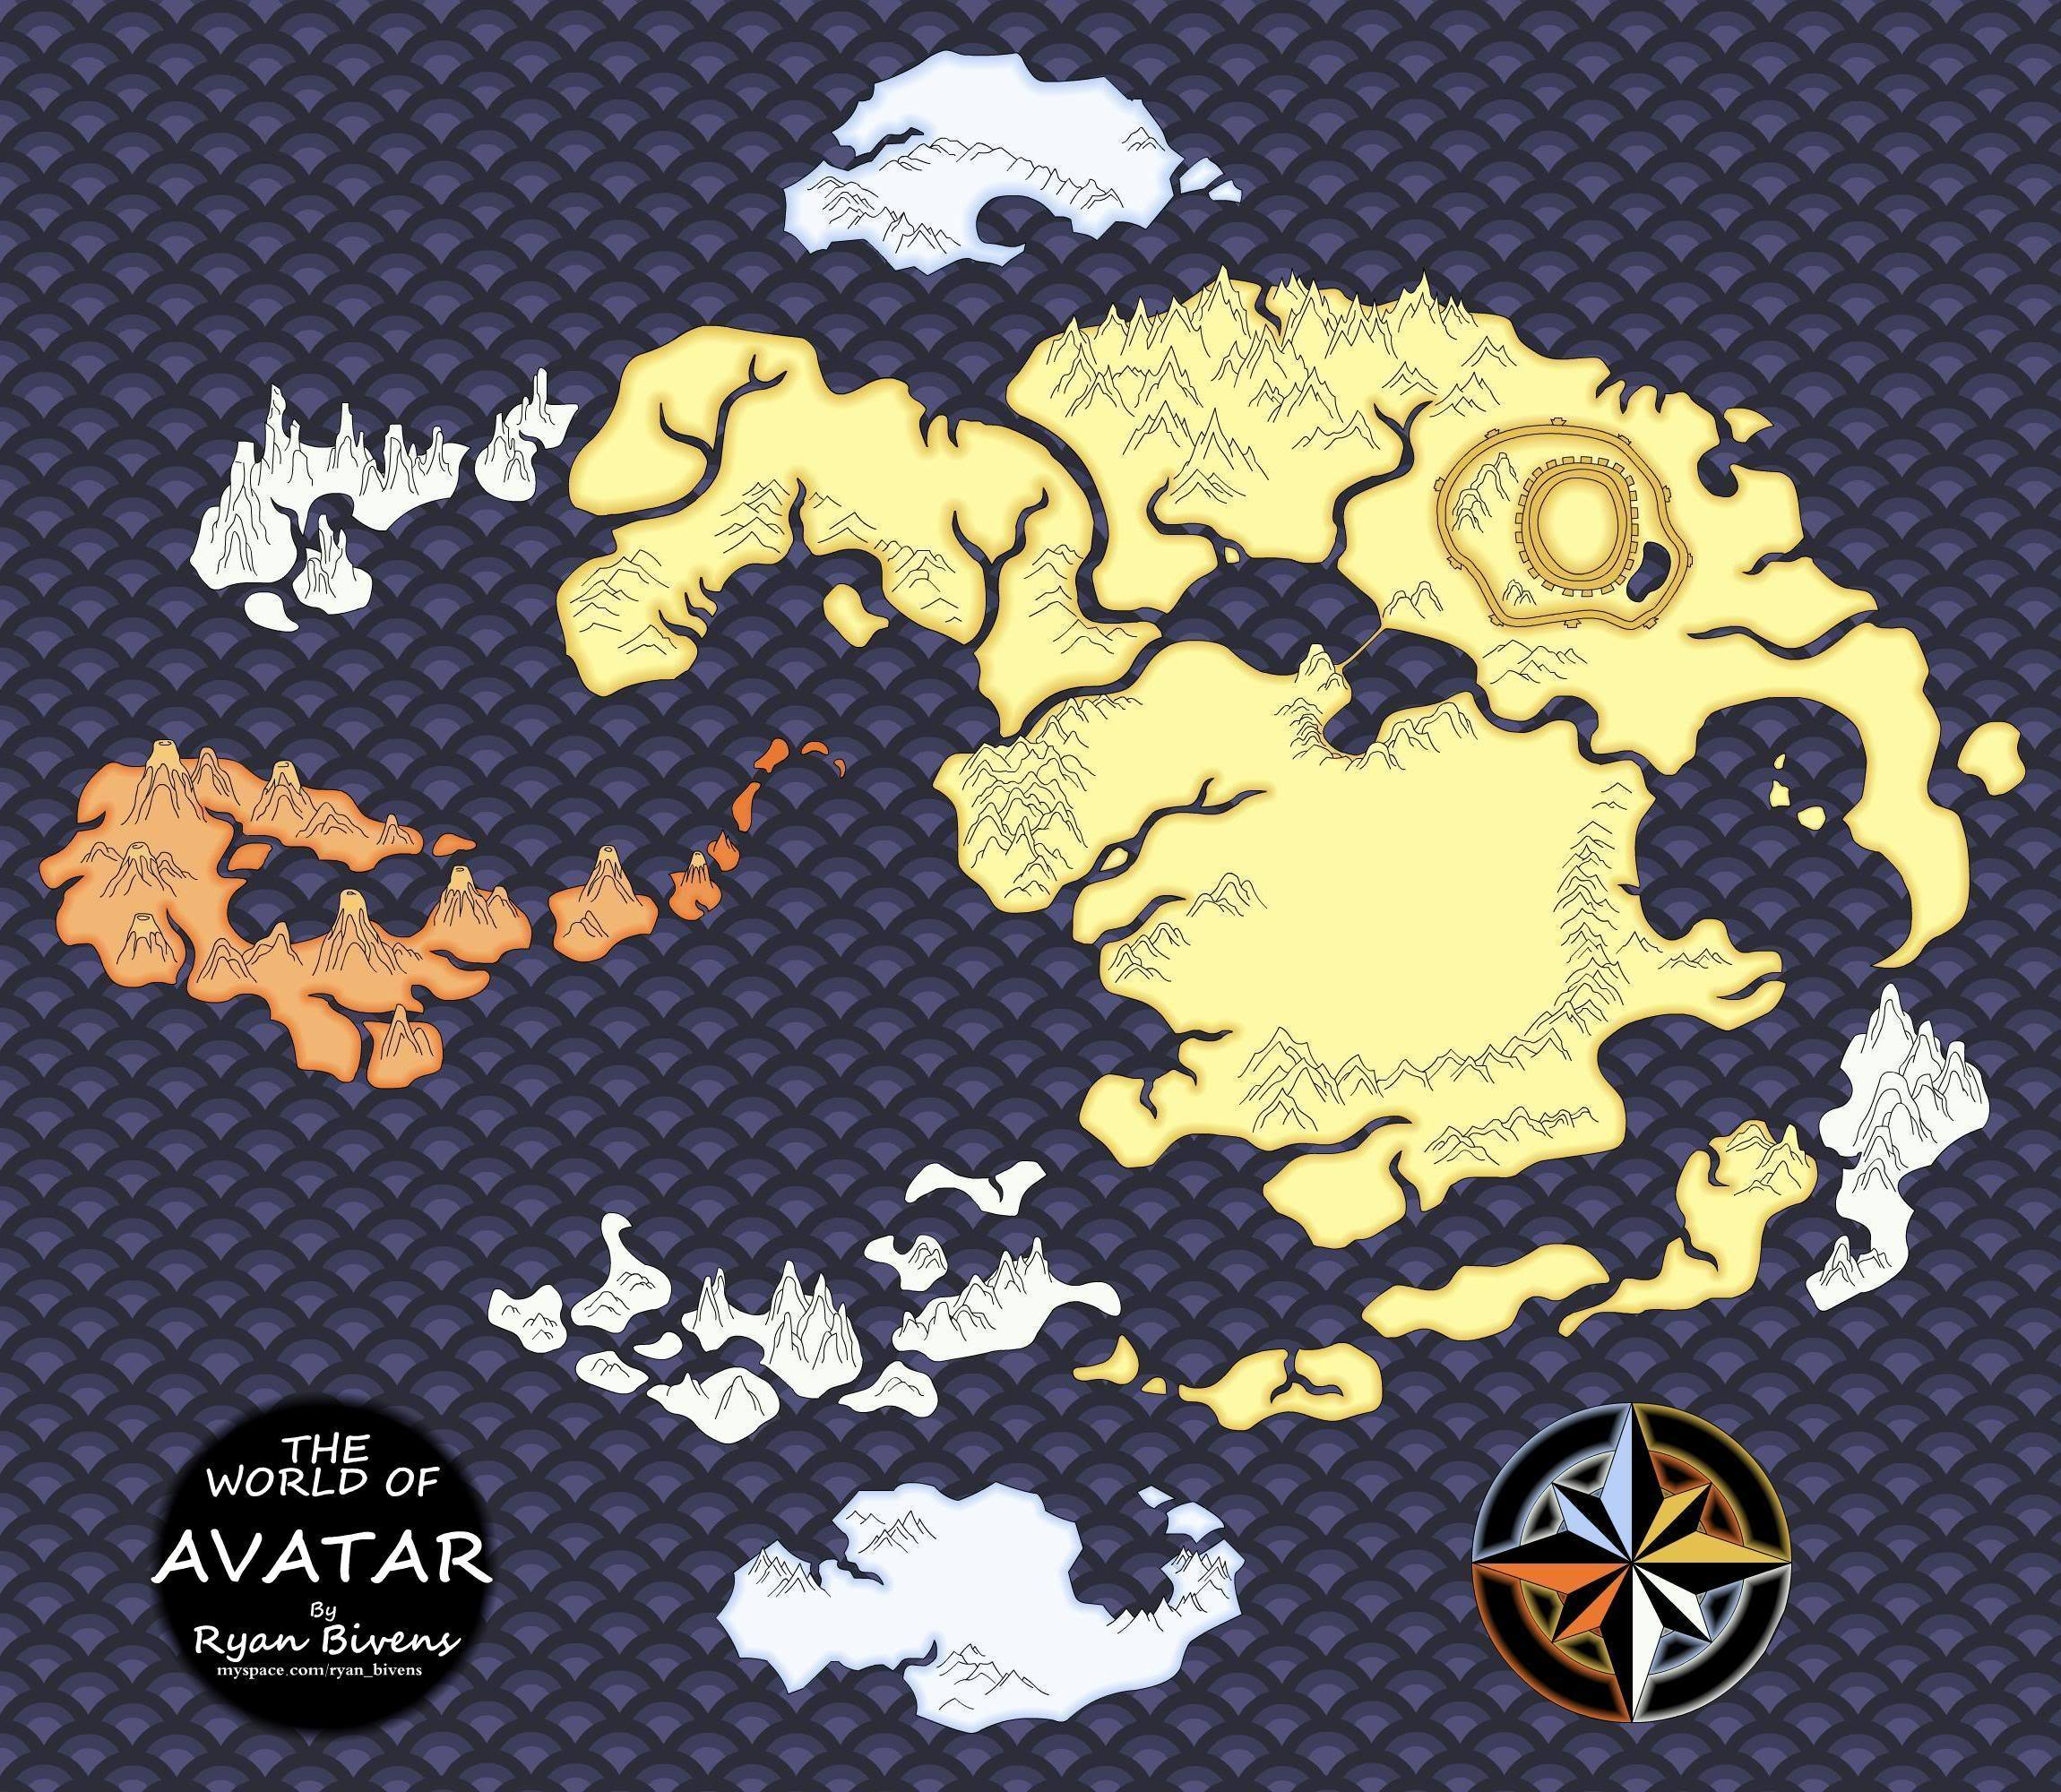 Avatar The Last Airbender Images AvatarMap HD Wallpaper And Background Photos